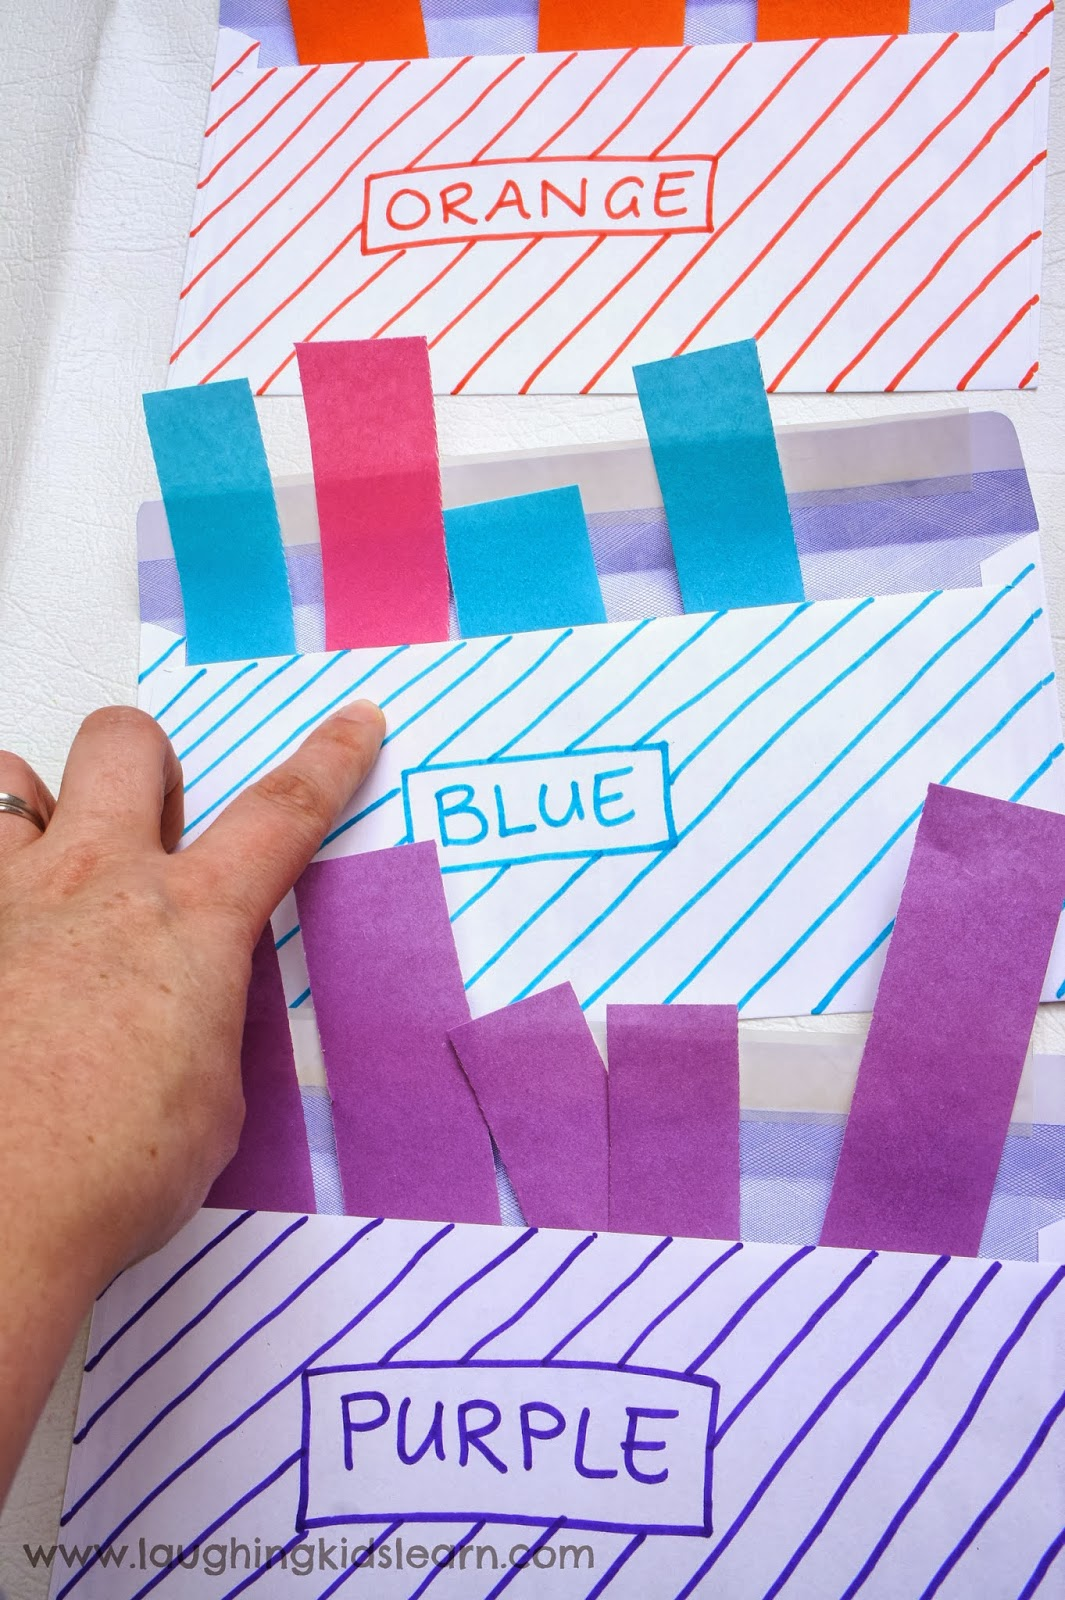 Colour Sorting Activity For Toddlers Laughing Kids Learn